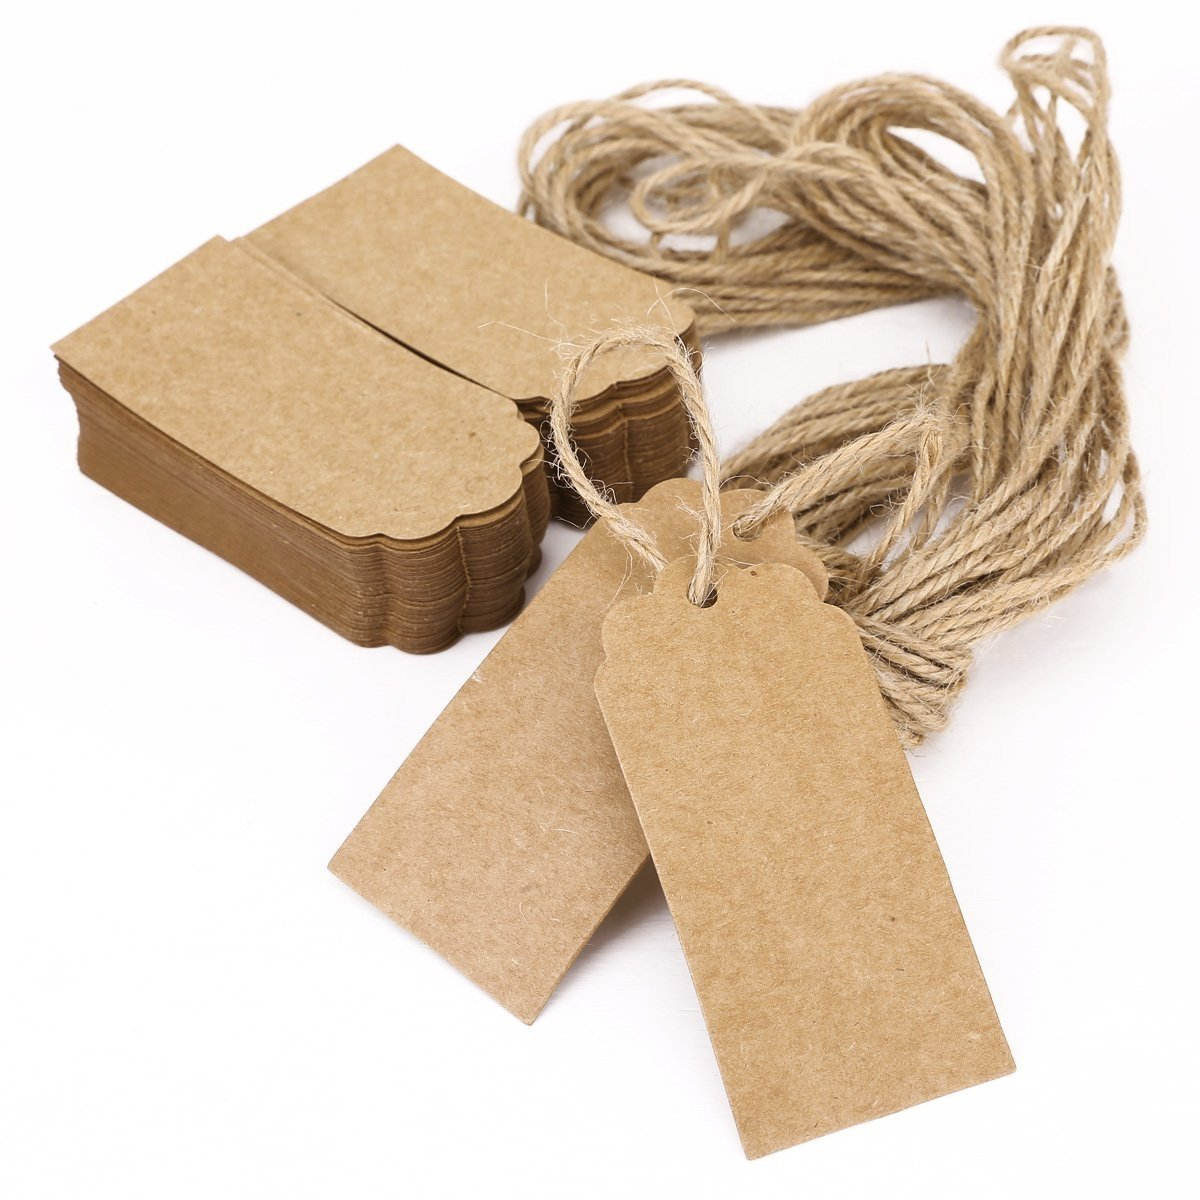 100pcs Brown Kraft Paper Hang Tags Gift Price Party Wedding Label Cards + 20m string by TARGARIAN